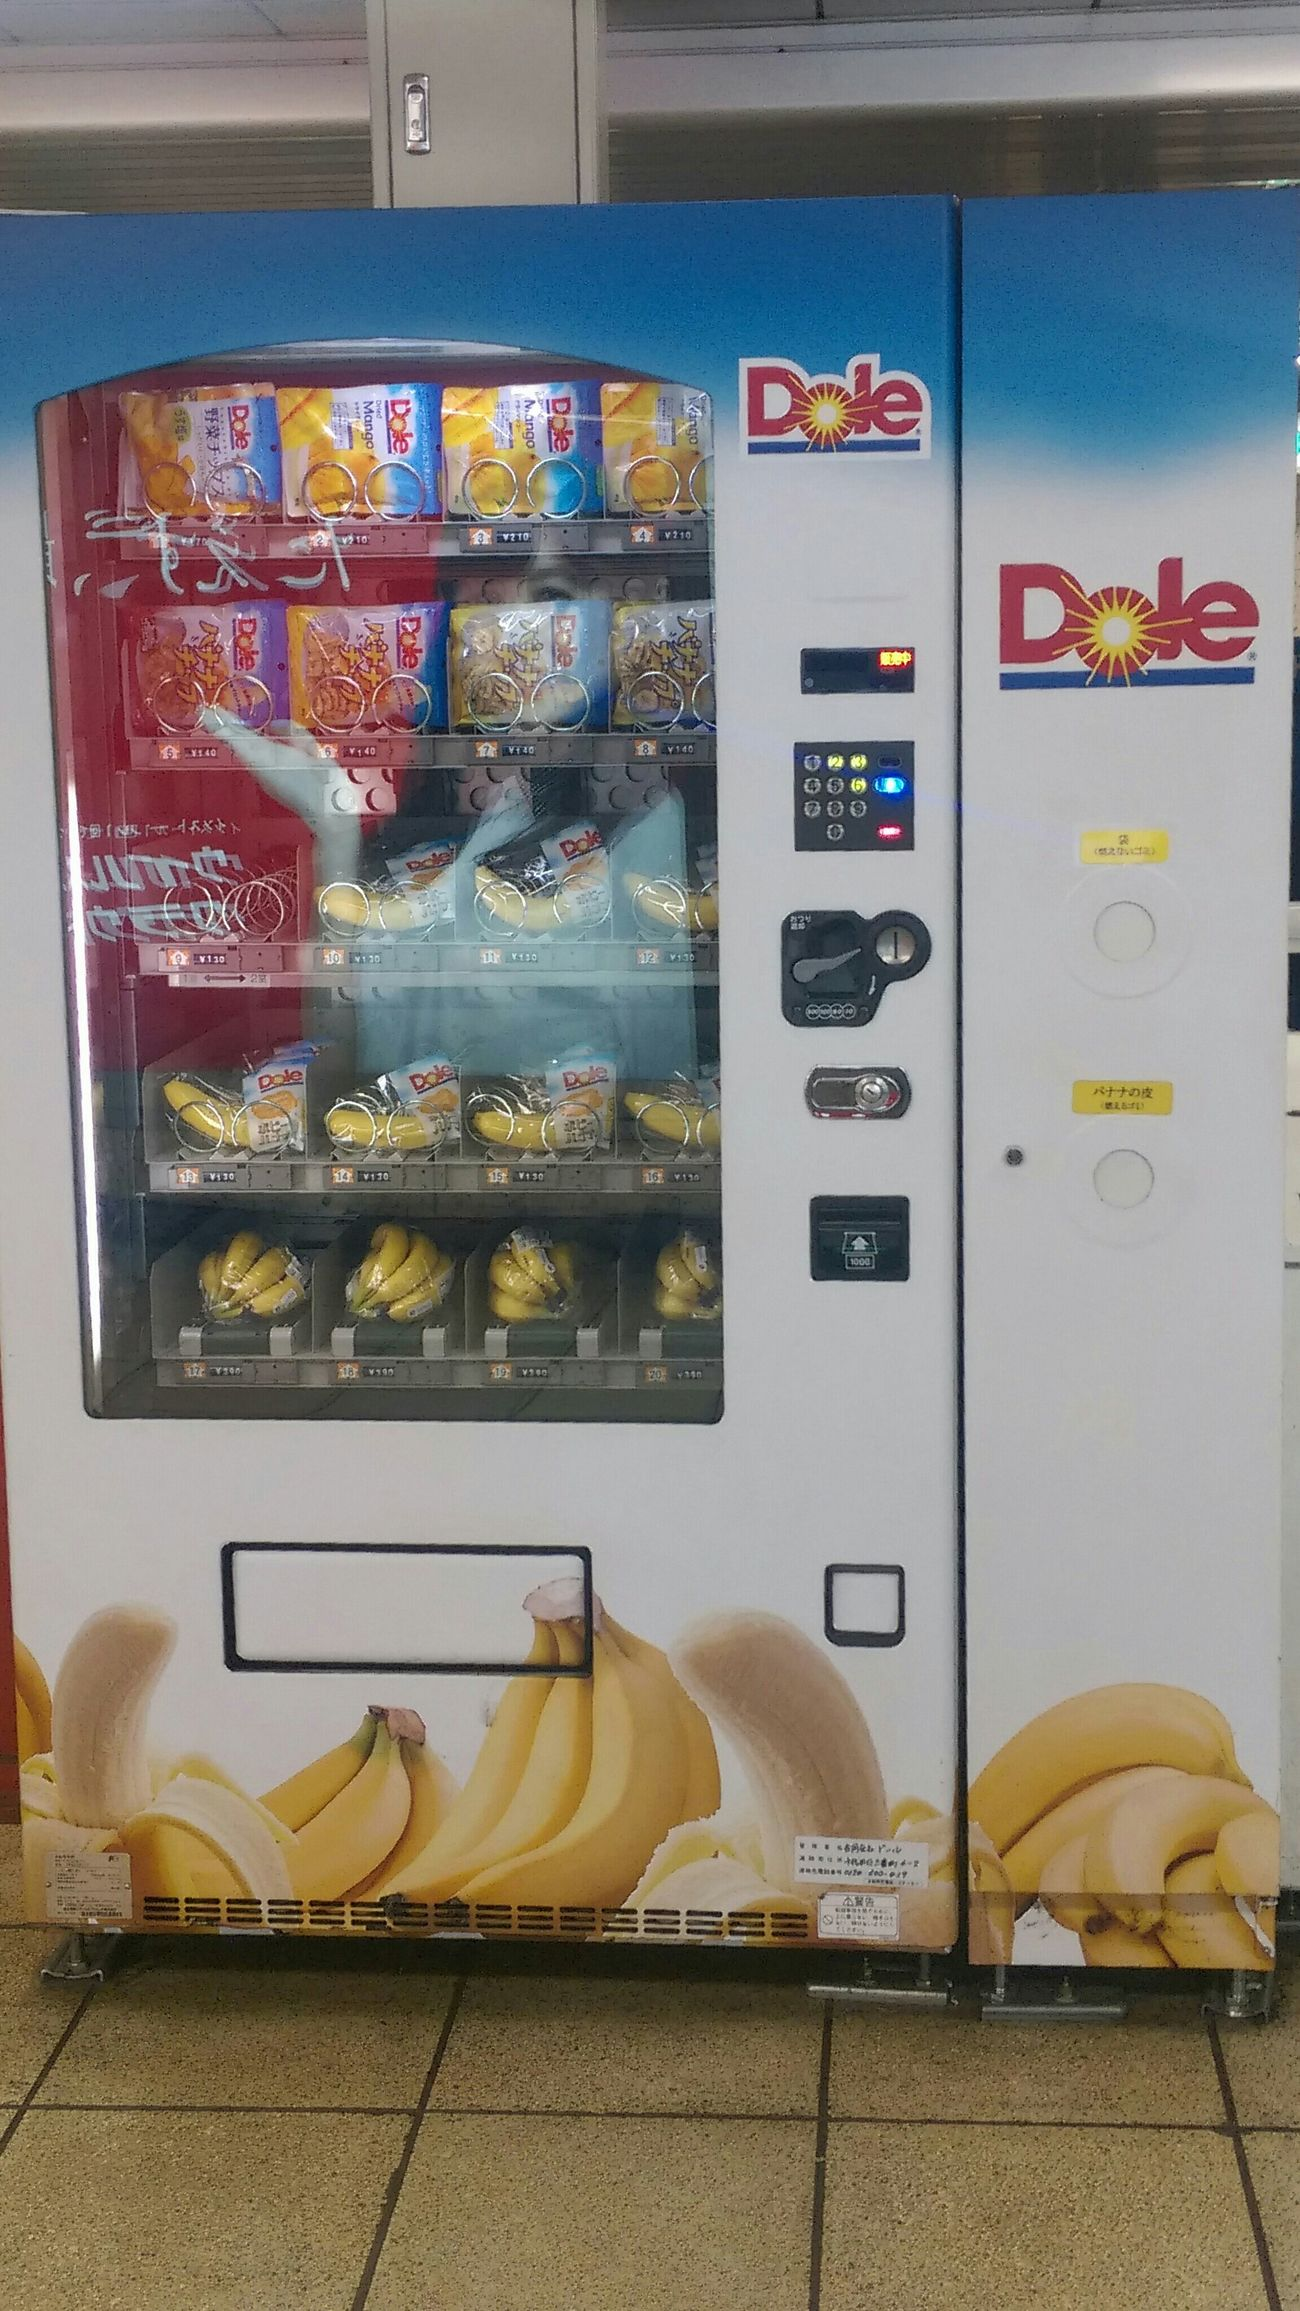 Bananas Vending Machine Streetphotography 何と!バナナの自販機!